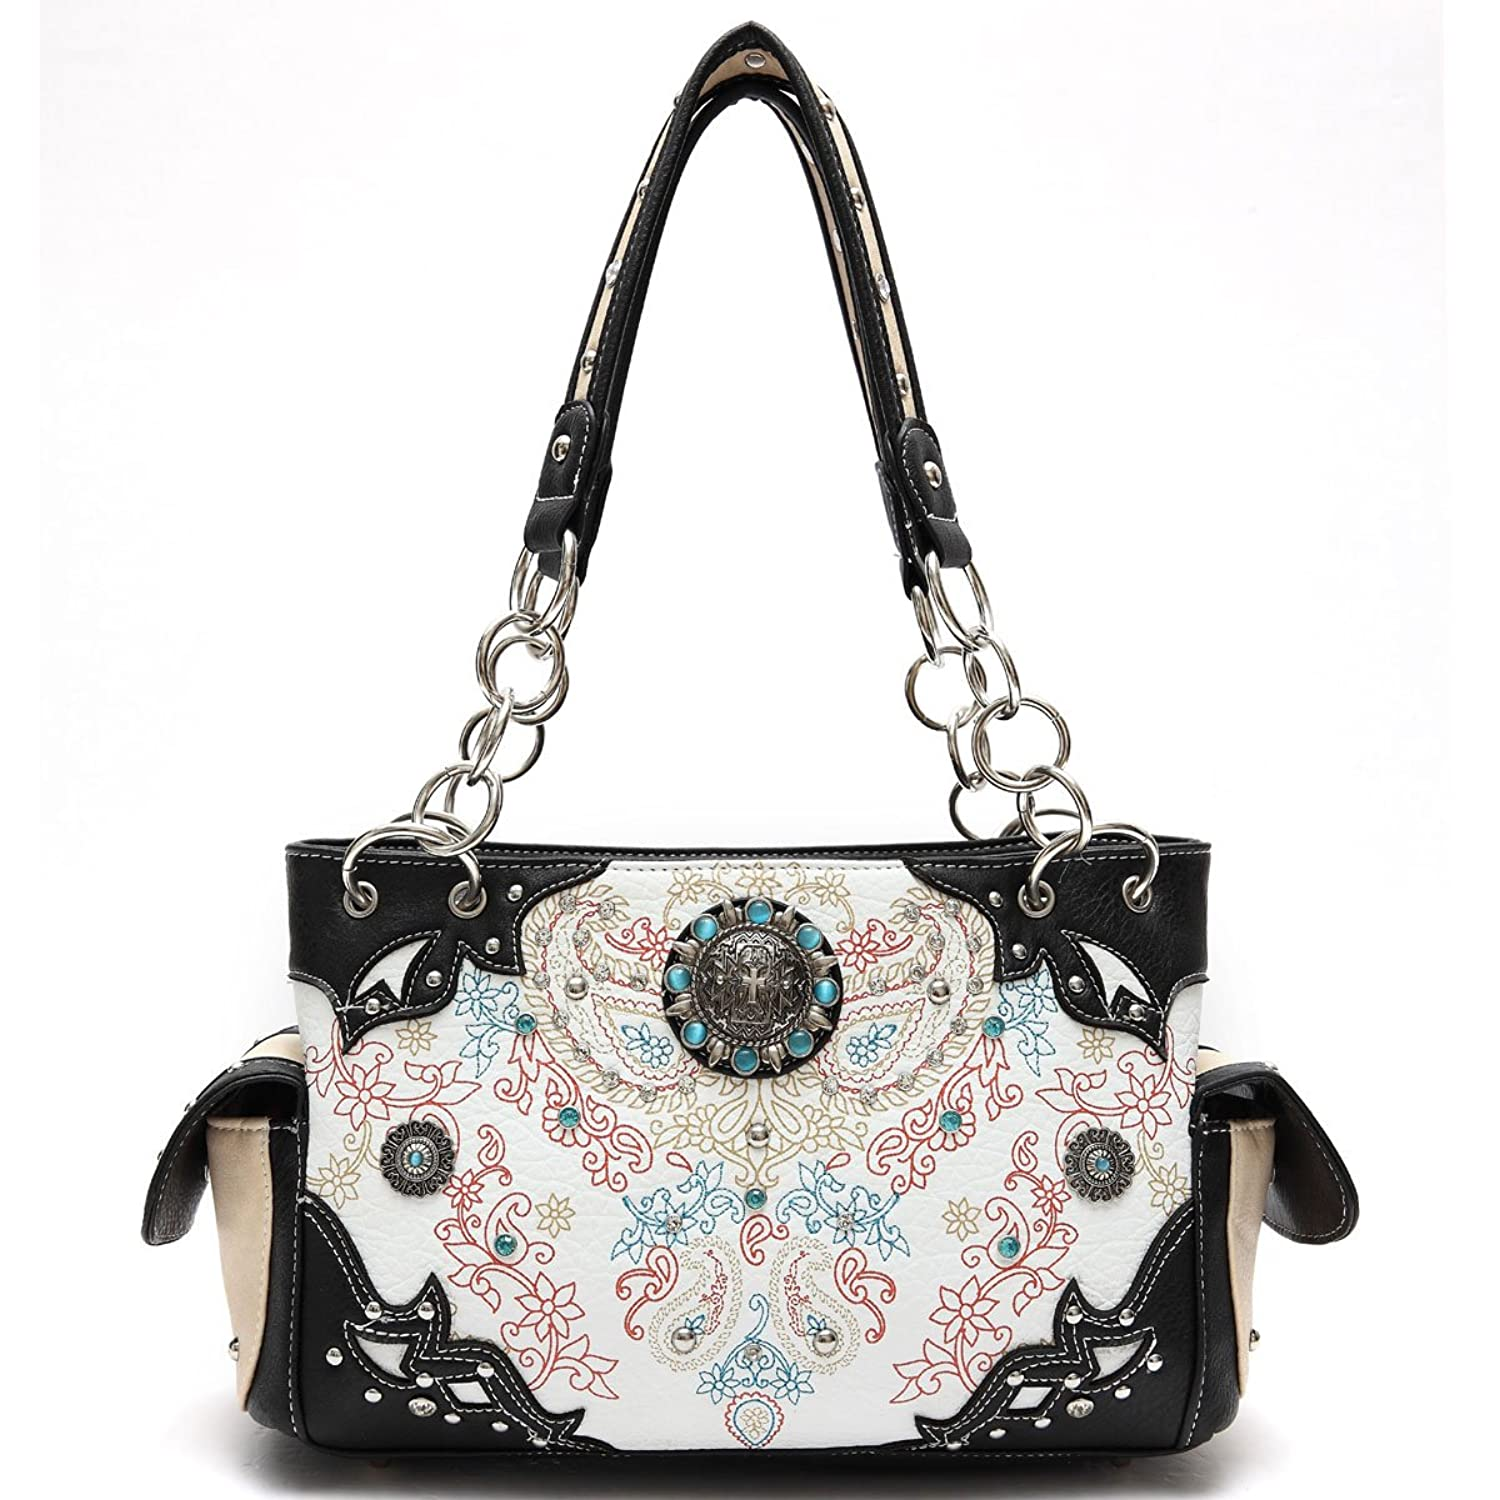 Cowgirl Trendy Concho Floral Print Tote Bag in Black